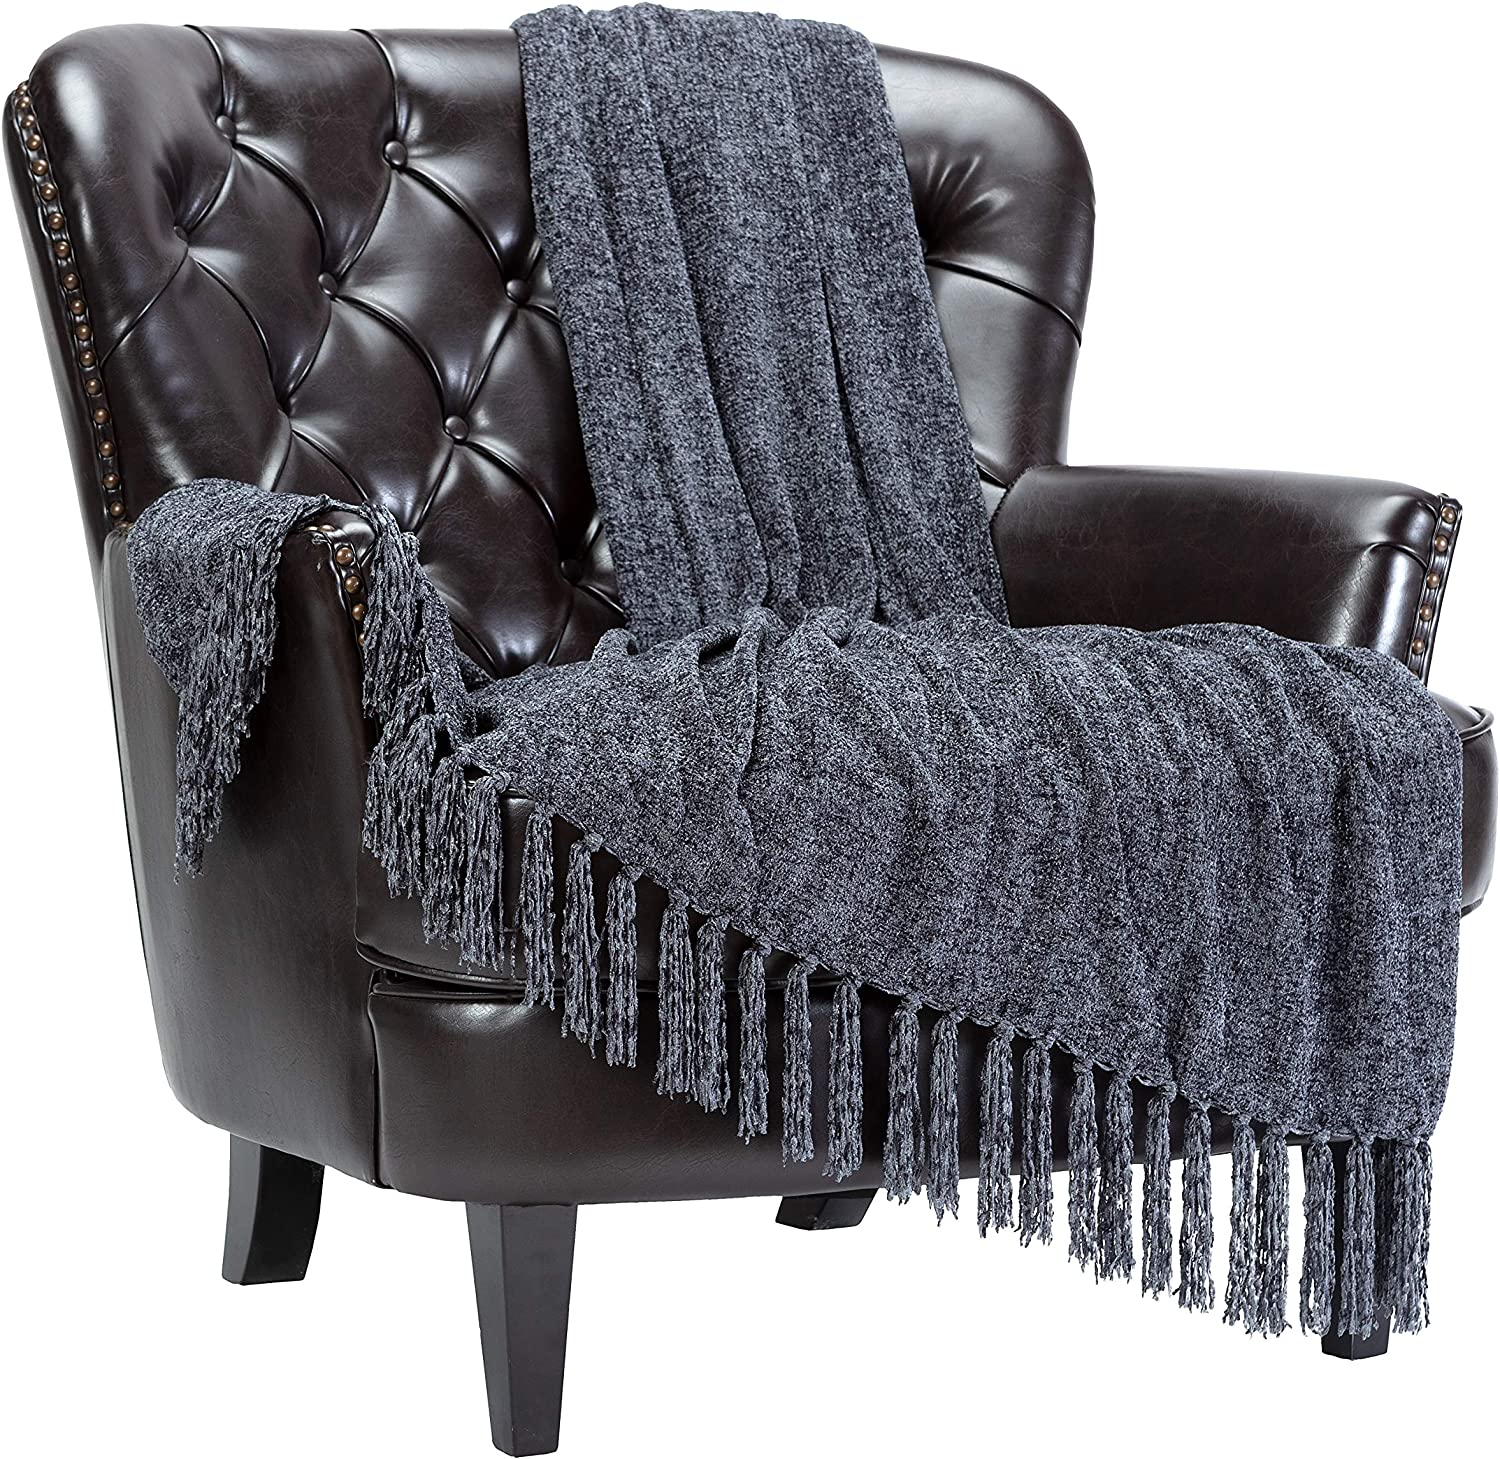 Chanasya Chenille Velvety Texture Decorative Throw Blanket with Tassels - Soft Cozy Elegant with Subtle Shimmer for Sofa Chair Couch Bed Living Room Gray Throw Blanket (50x65 Inches) Dark Shadow